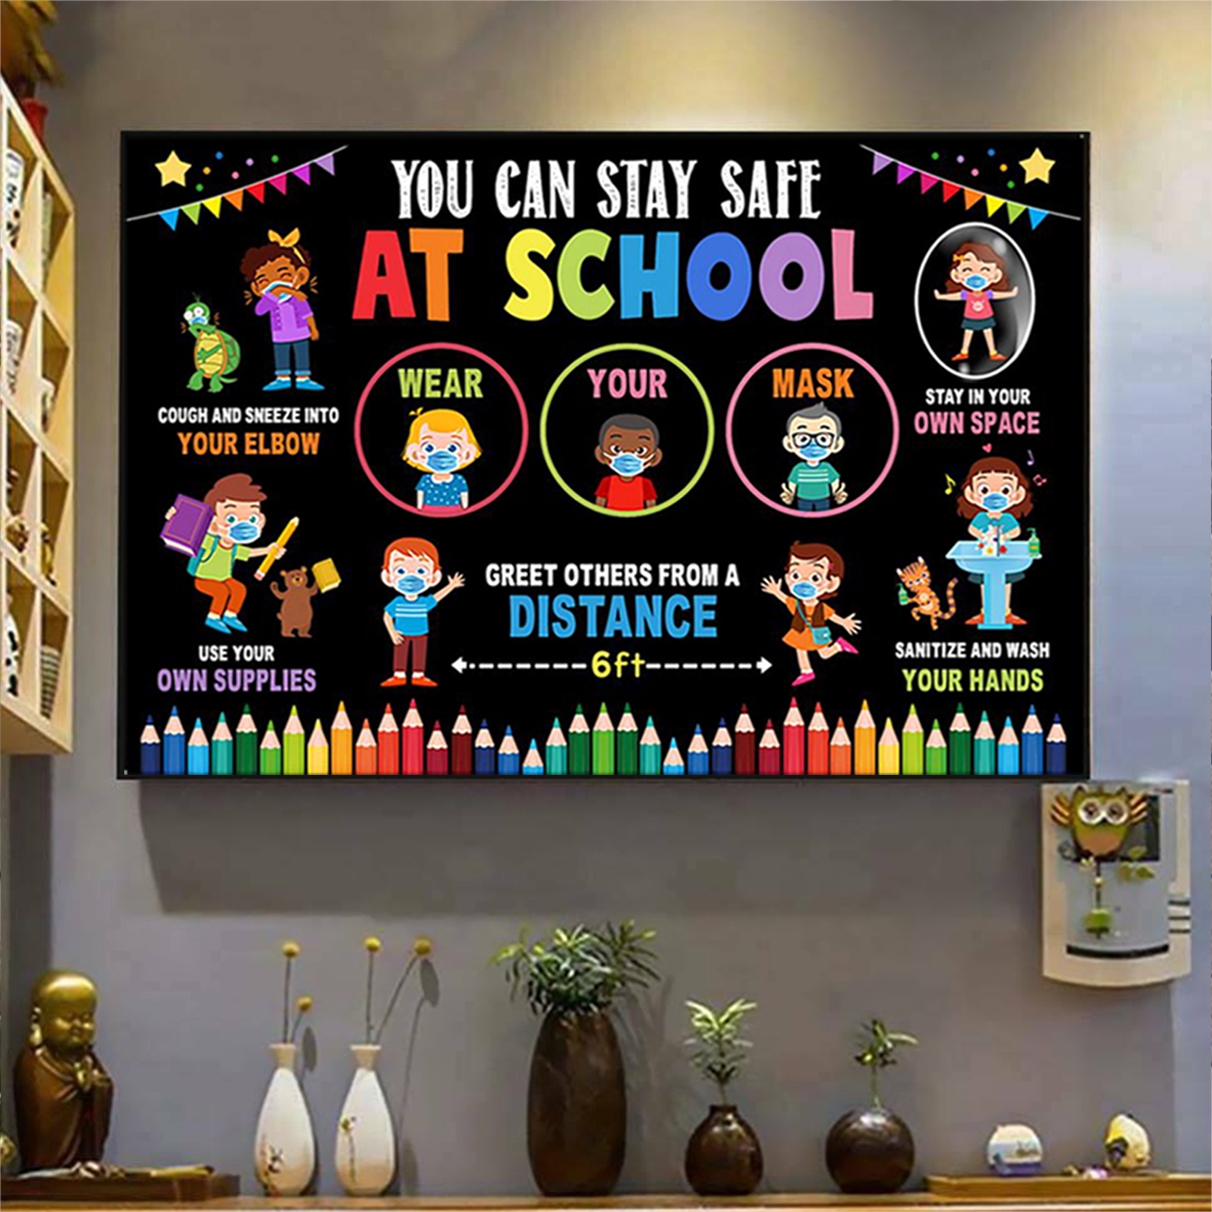 You can stay safe at school poster A1